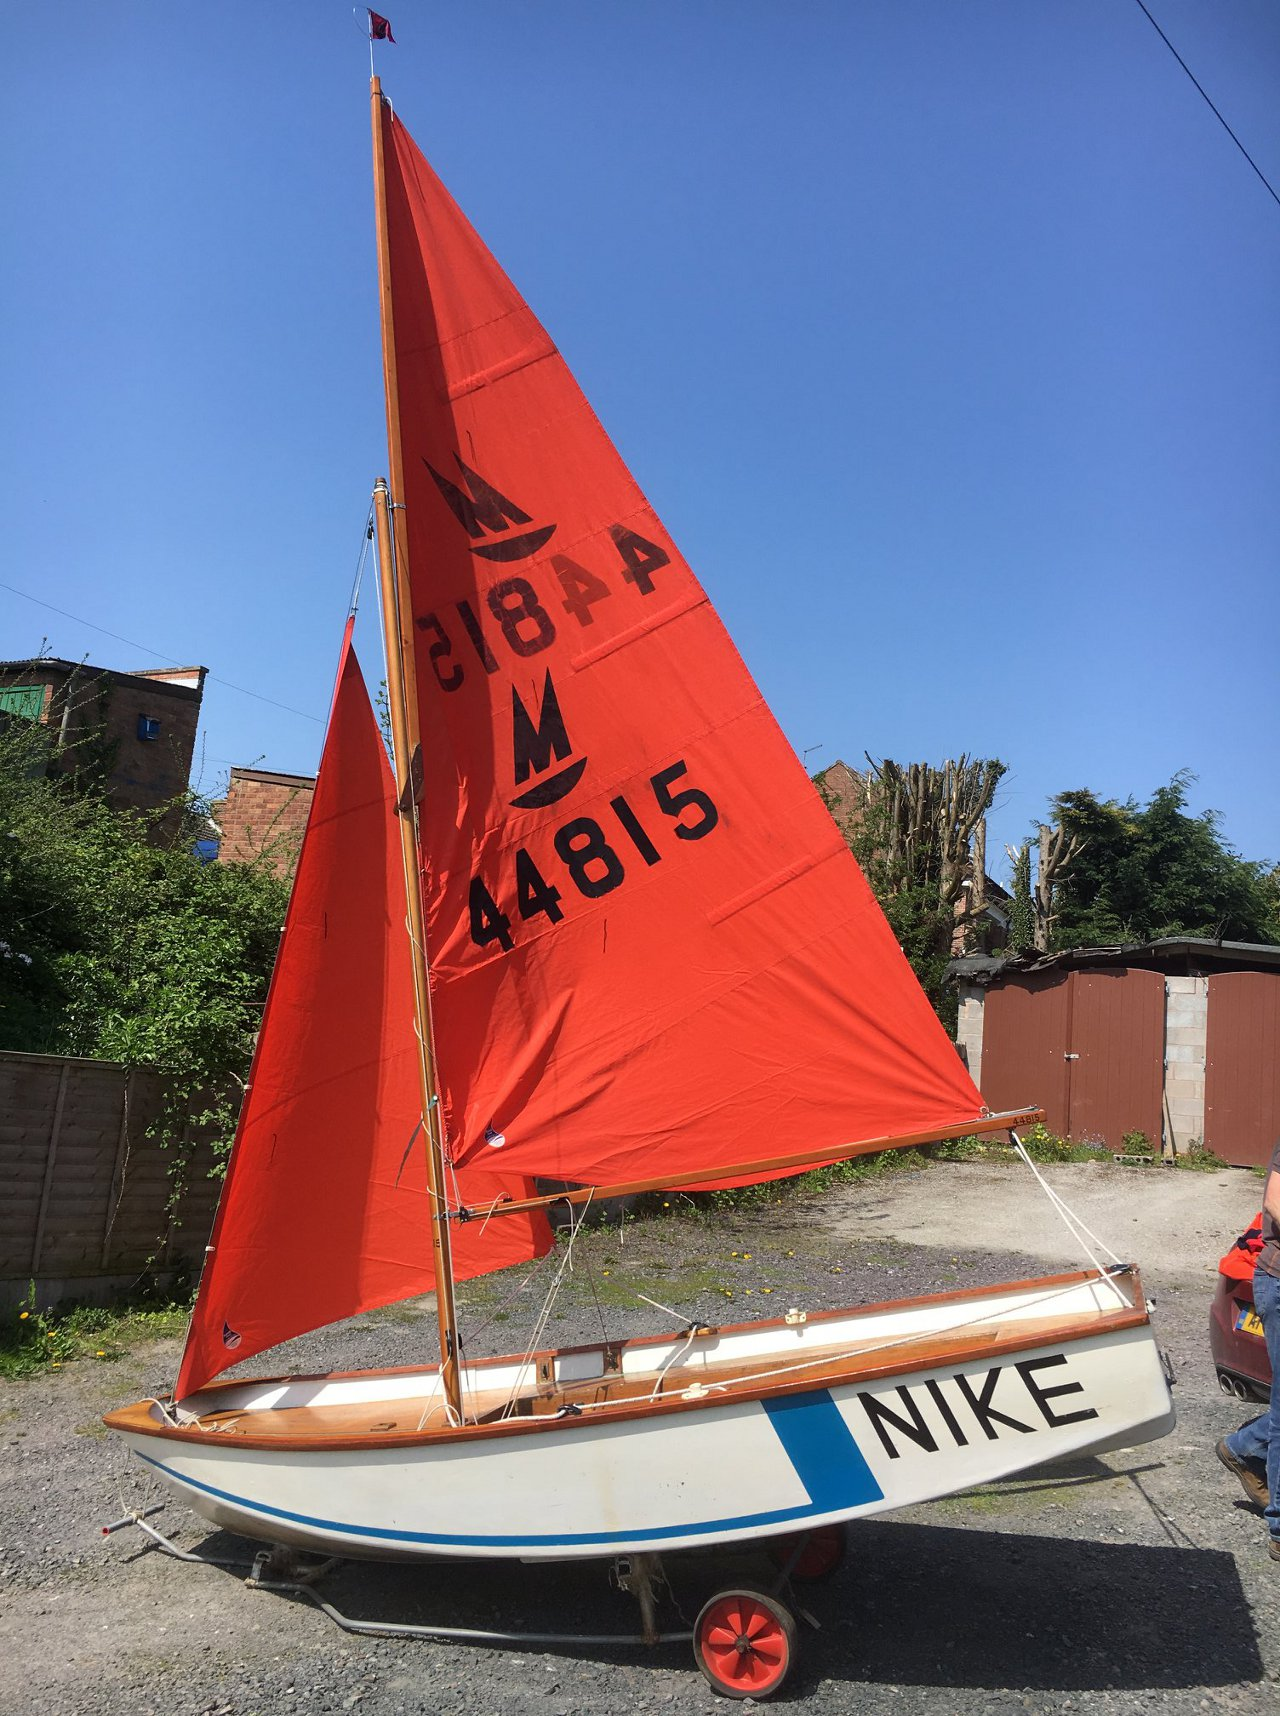 A Mirror dinghy rigged in a back yard